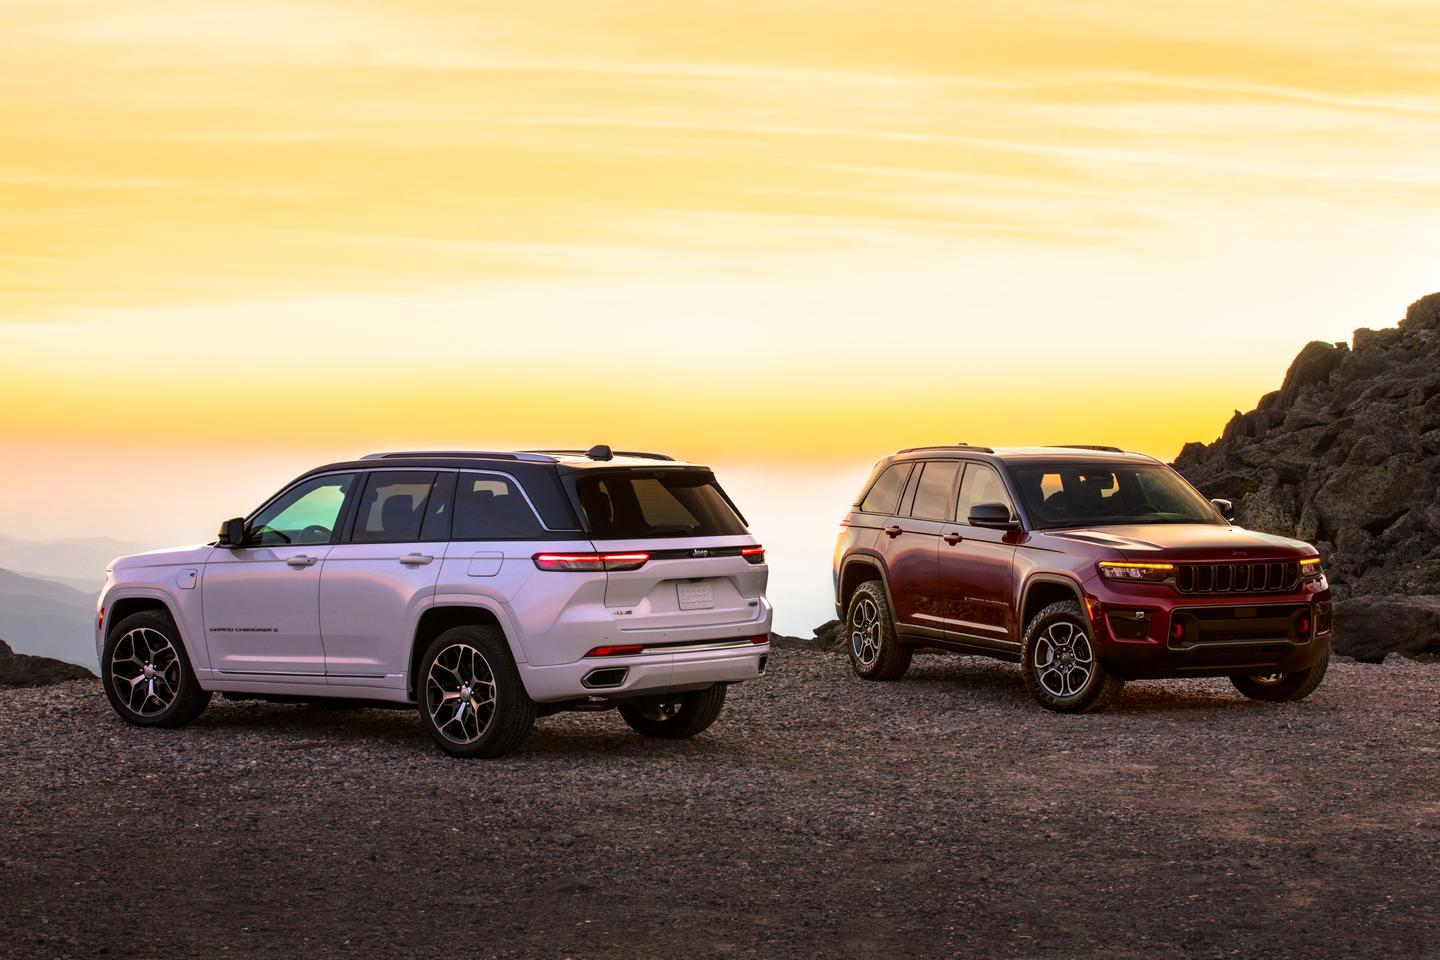 The 2022 Jeep Grand Cherokee debuts as Jeep's jump into the premium-level market